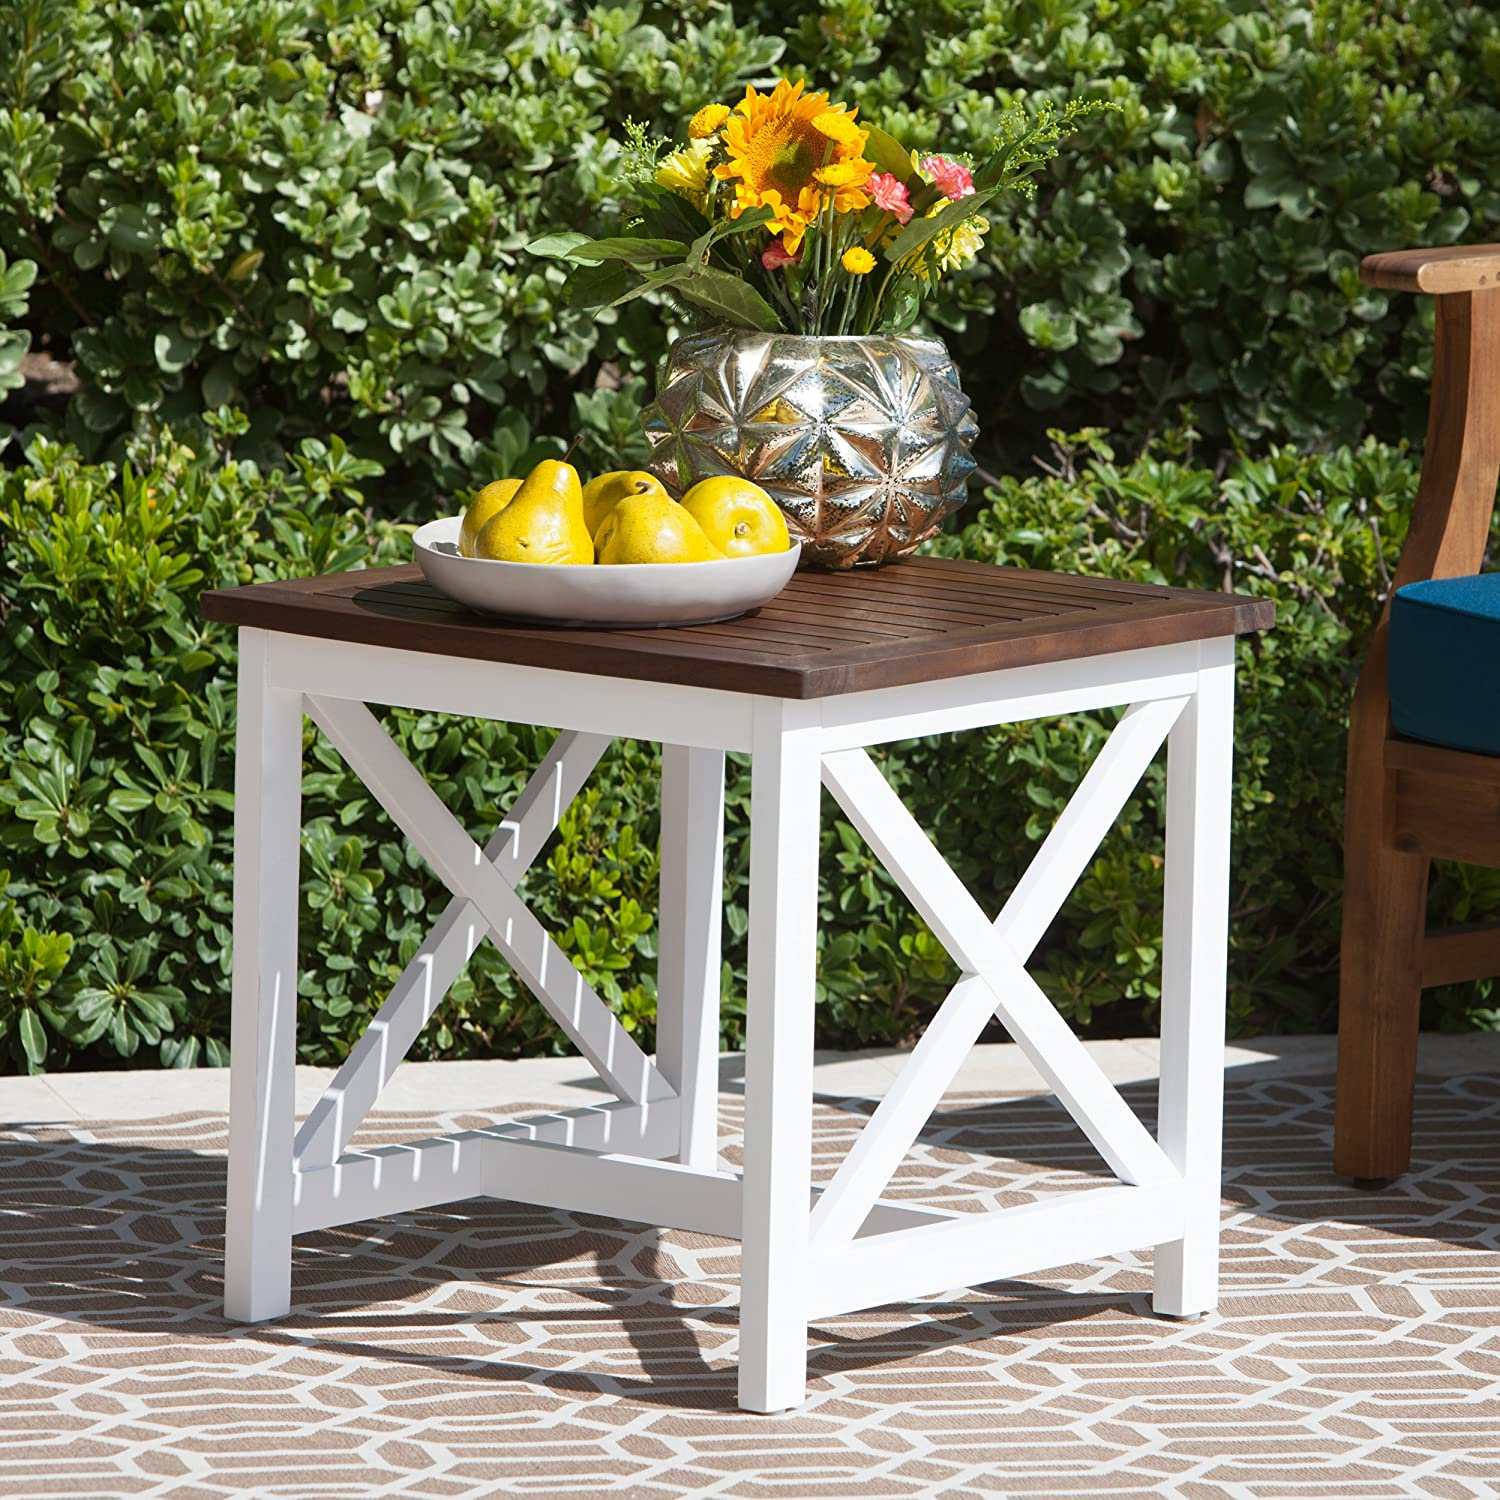 Christopher Knight Home Cassandra Outdoor Farmhouse Cottage Dark Oak Acacia Wood End Table with White Frame, Brown